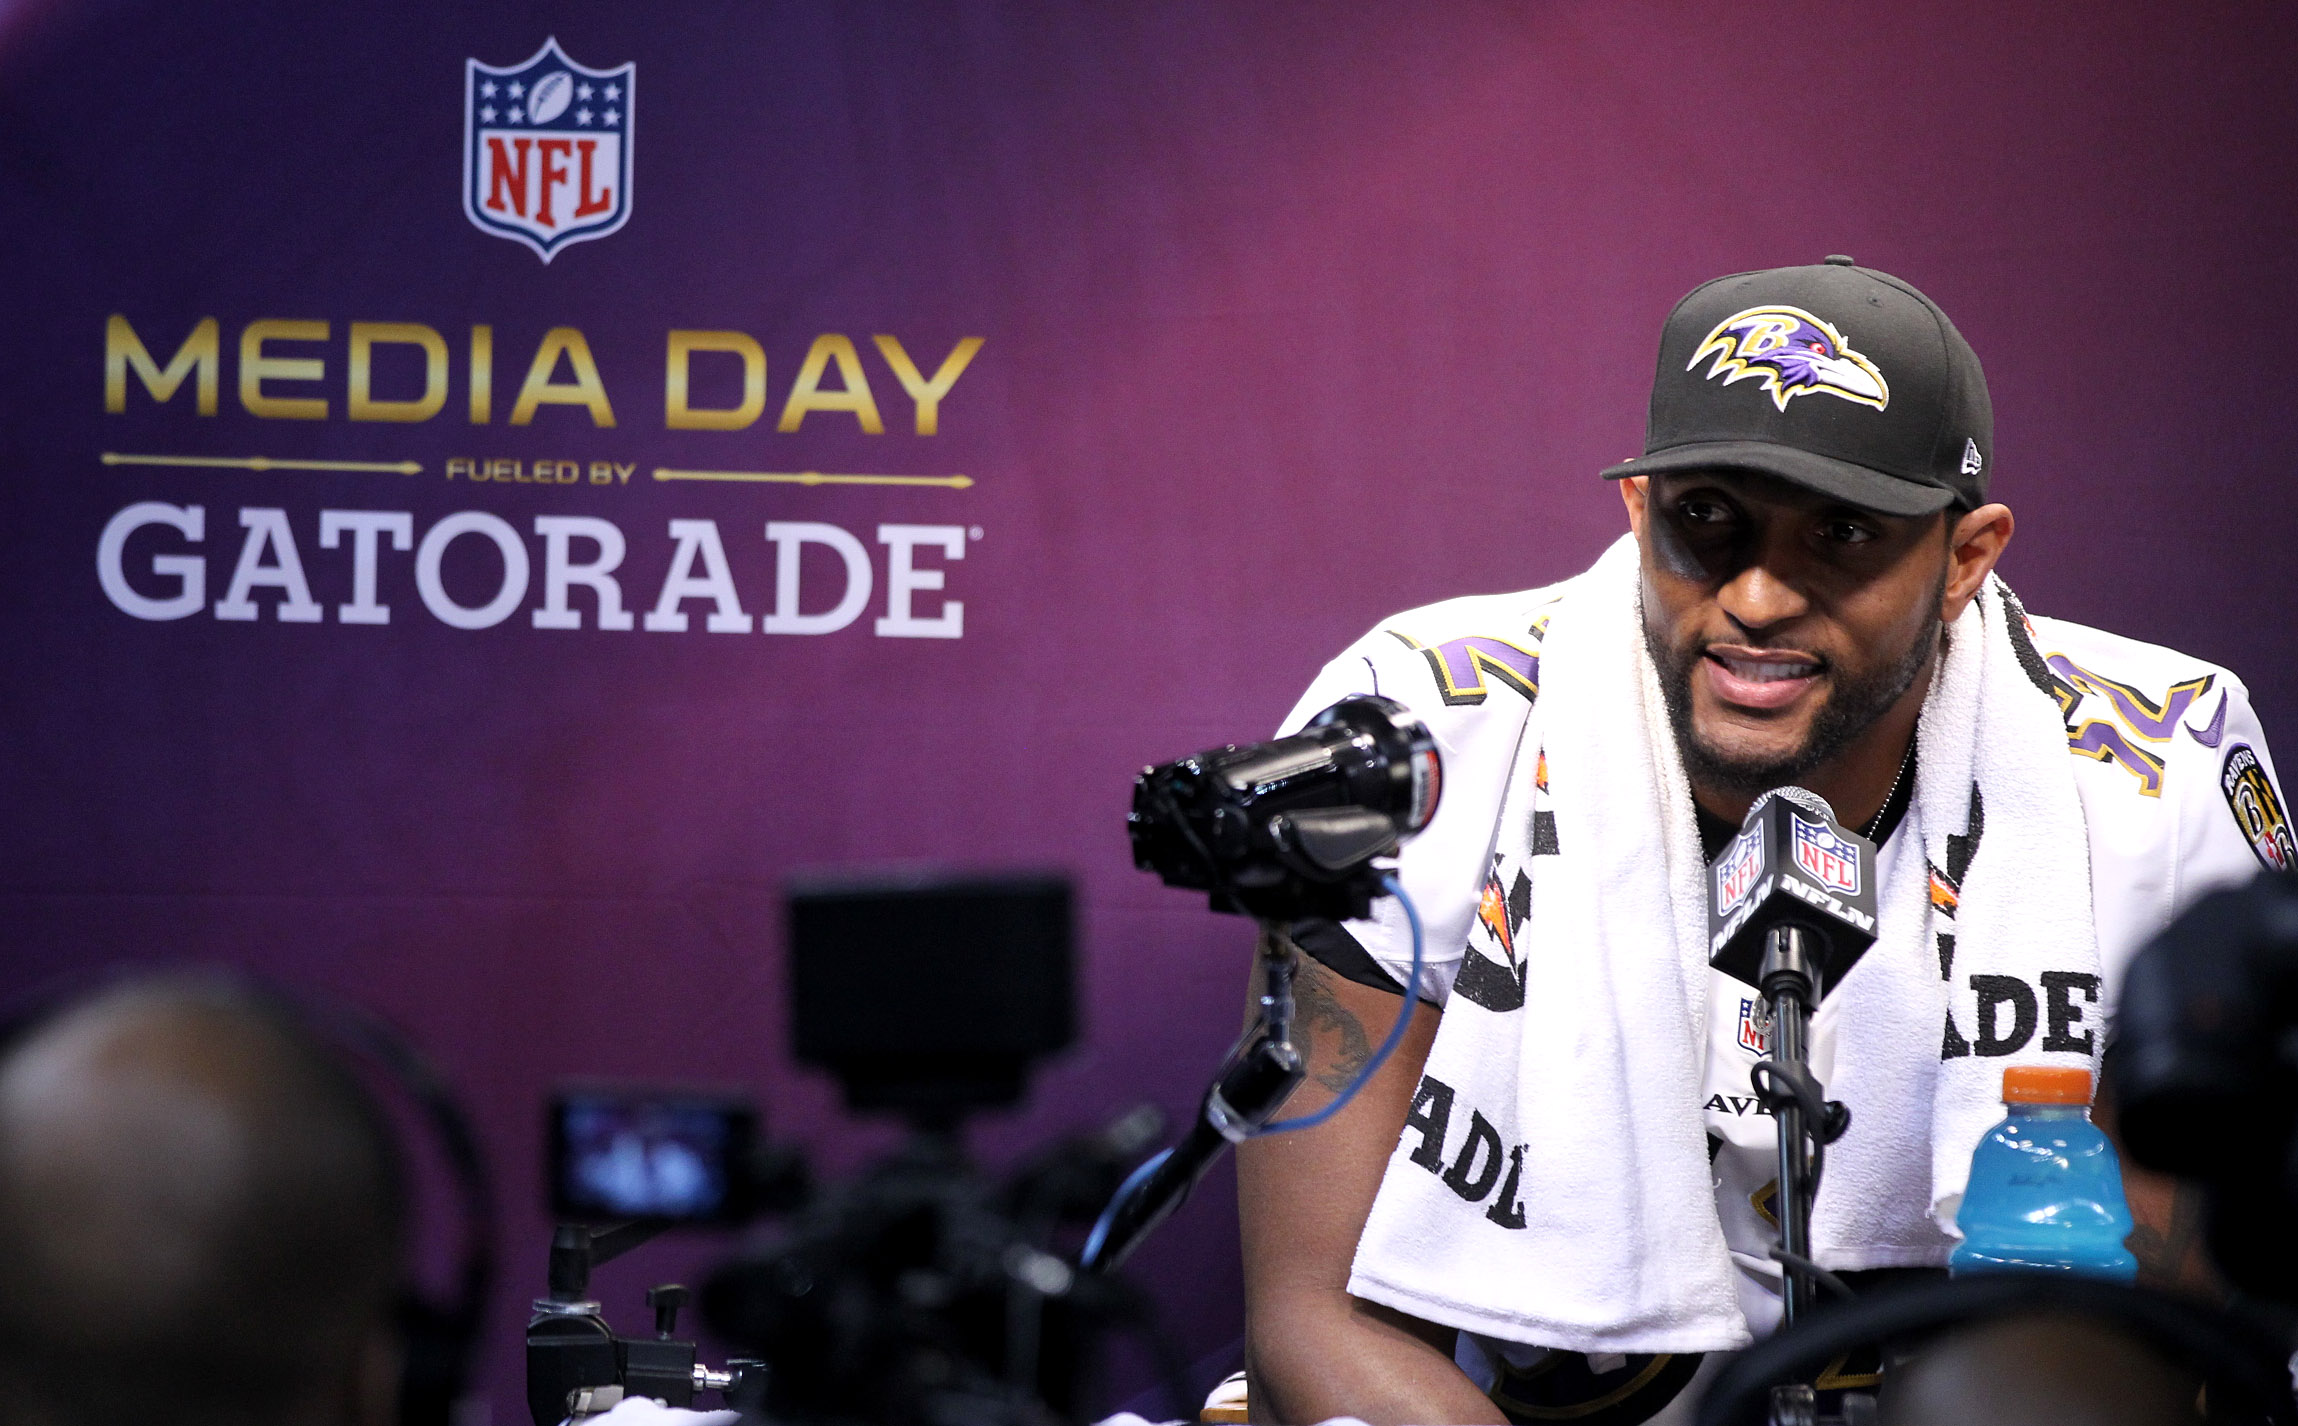 Baltimore Ravens linebacker Ray Lewis during the Super Bowl XLVII Media Day at the Superdome on Tuesday, January 29, 2013 in New Orleans, LA. (Perry Knotts/NFL)